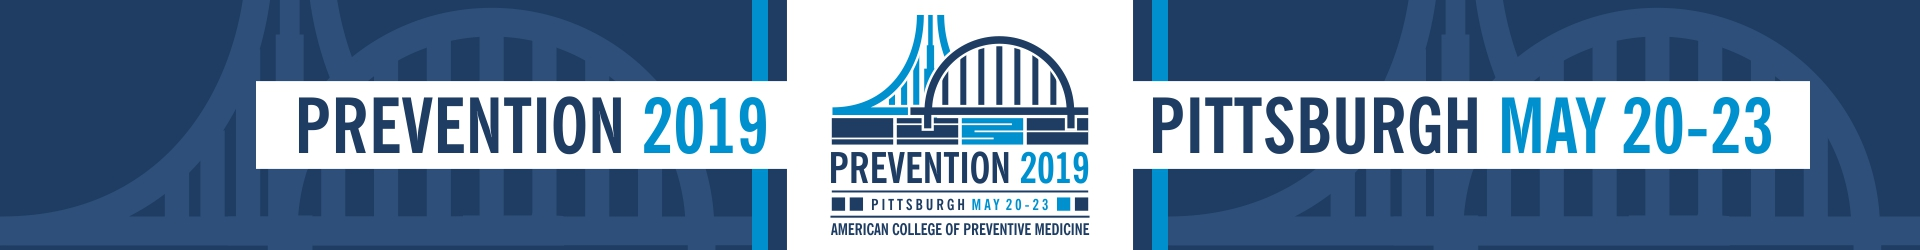 Prevention 2019 Event Banner